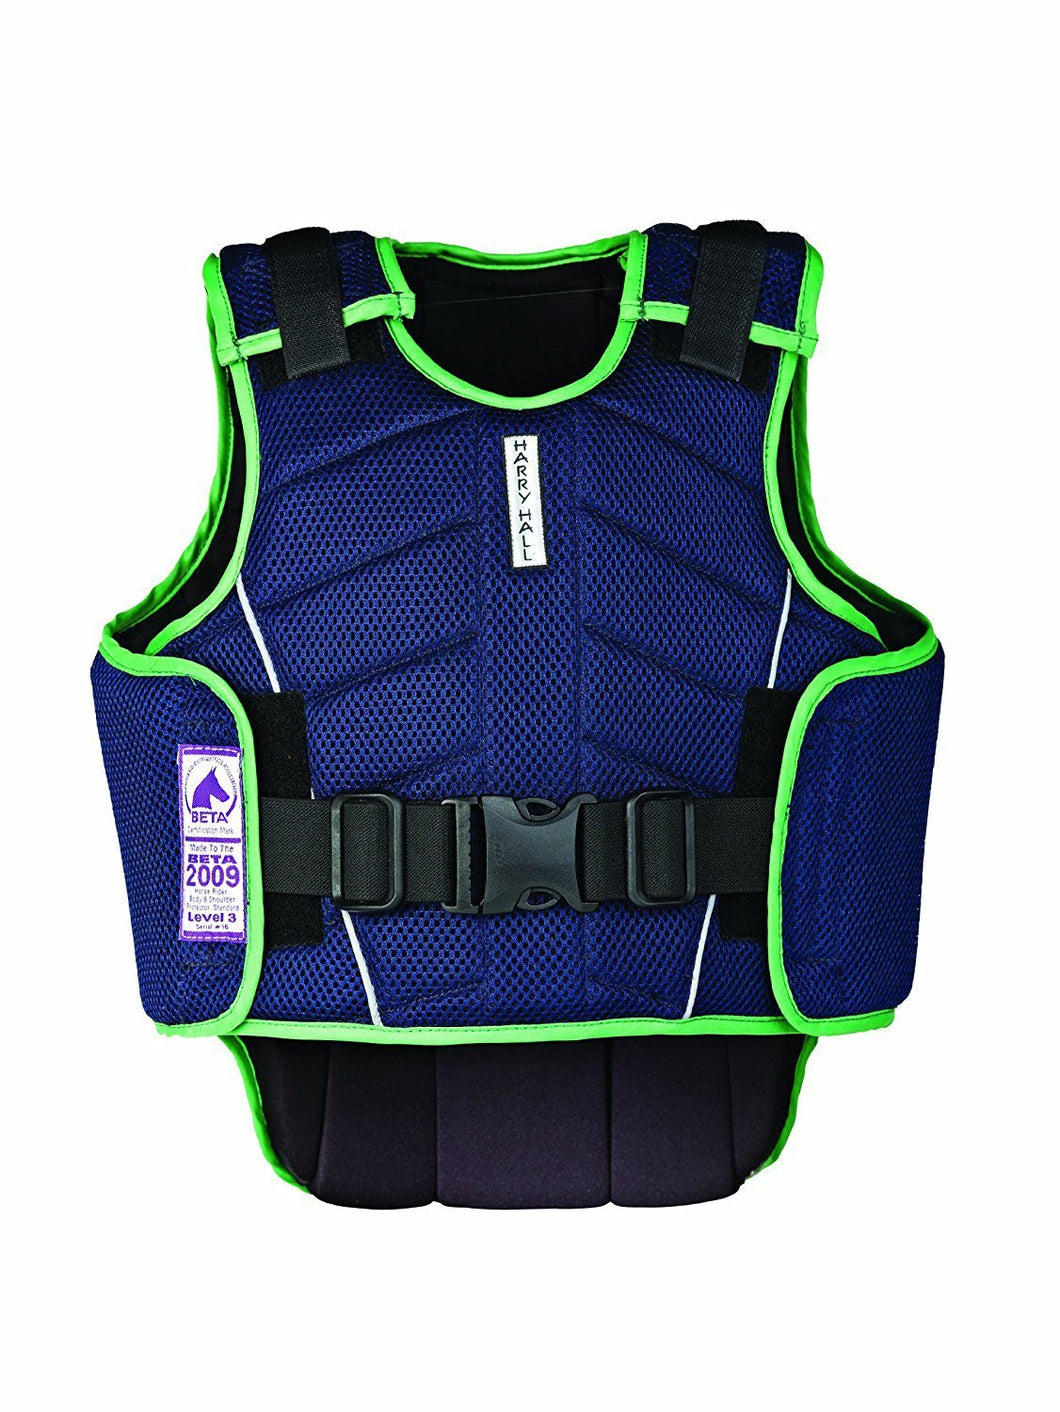 Harry Hall Child Zeus Body Protect - Gilberts Australia